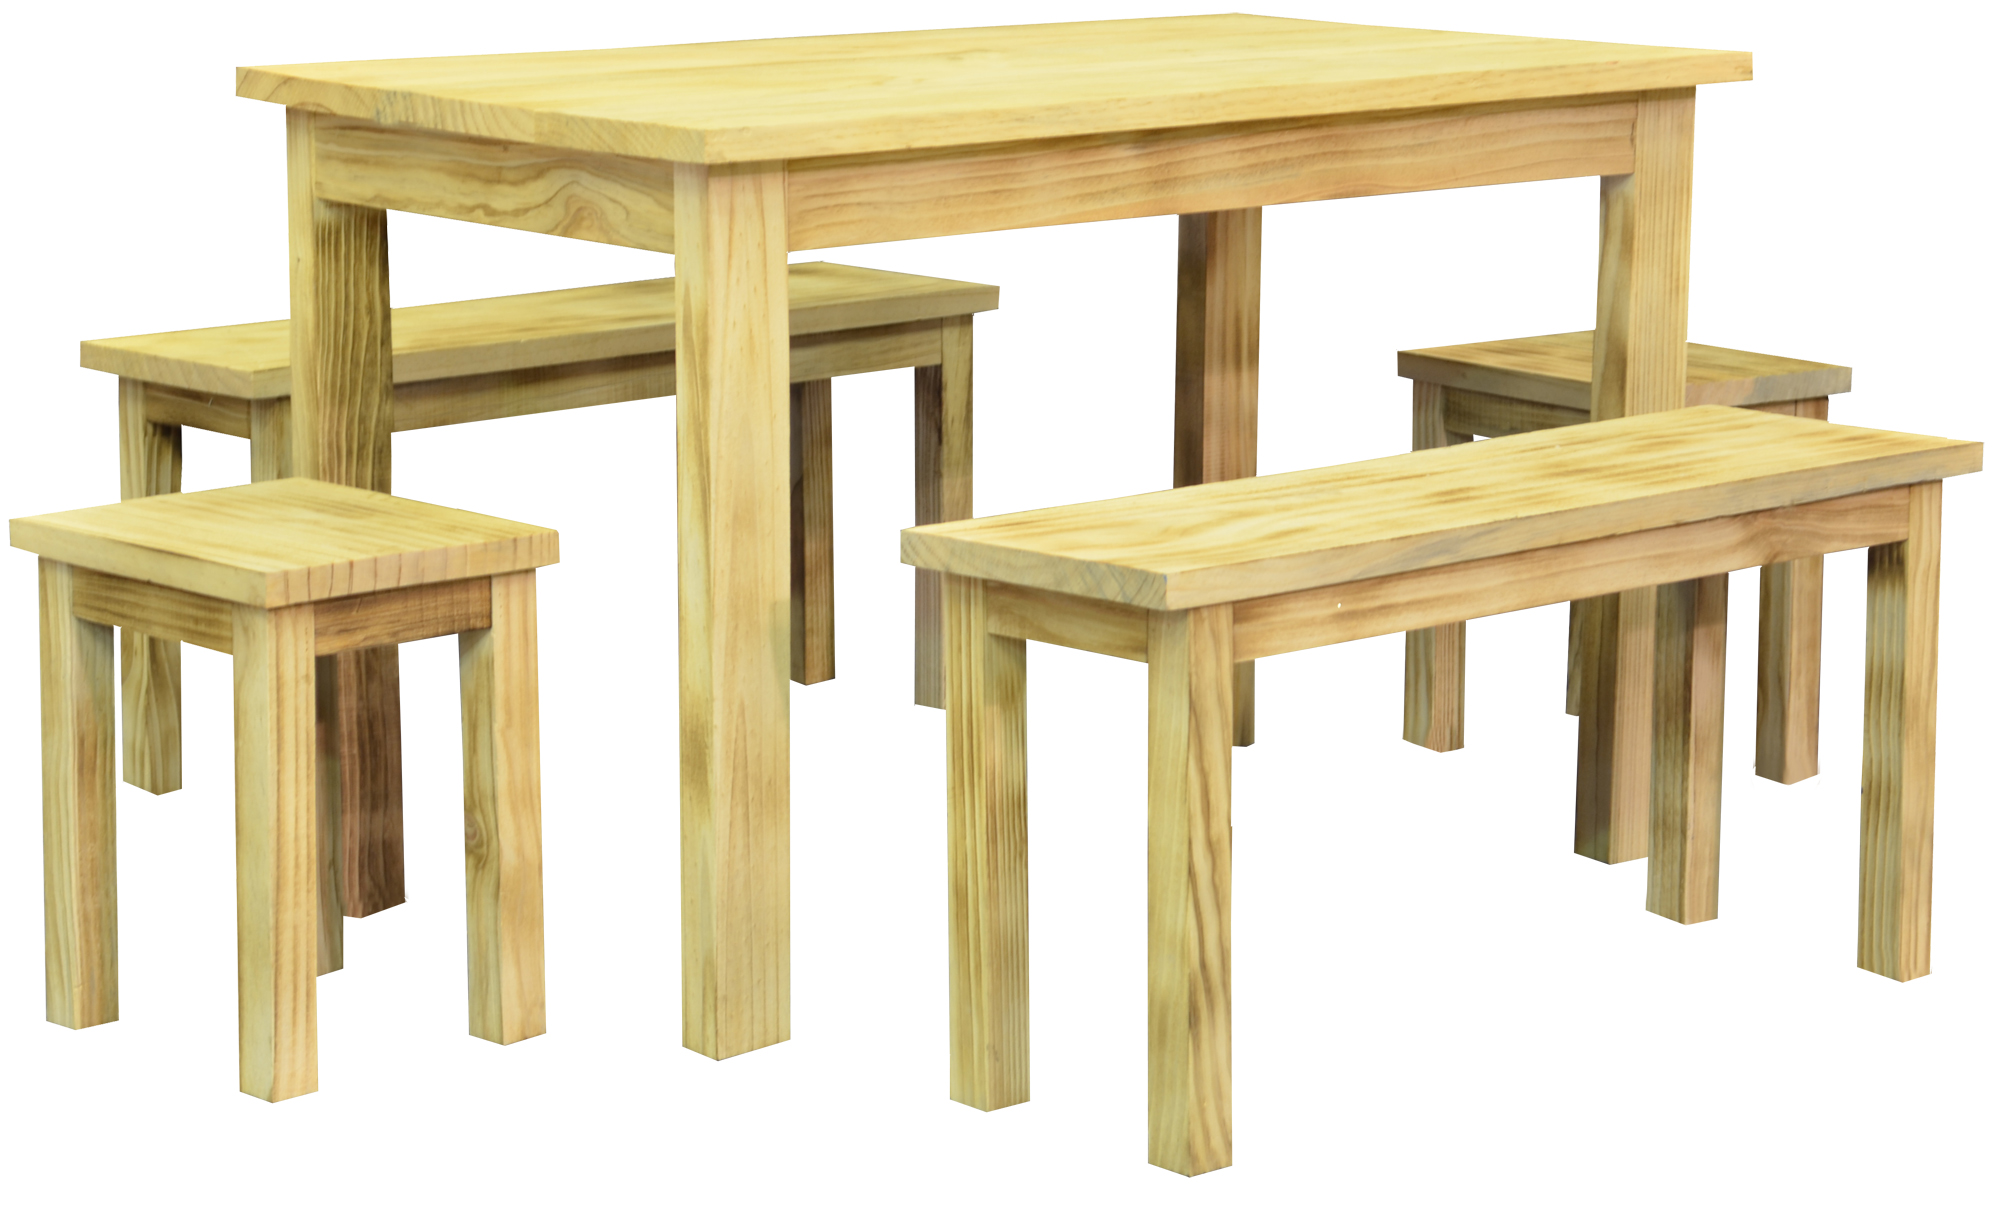 5pc Wooden Rectangular Dining Set With Table, Benches, Stools   Natural Wood